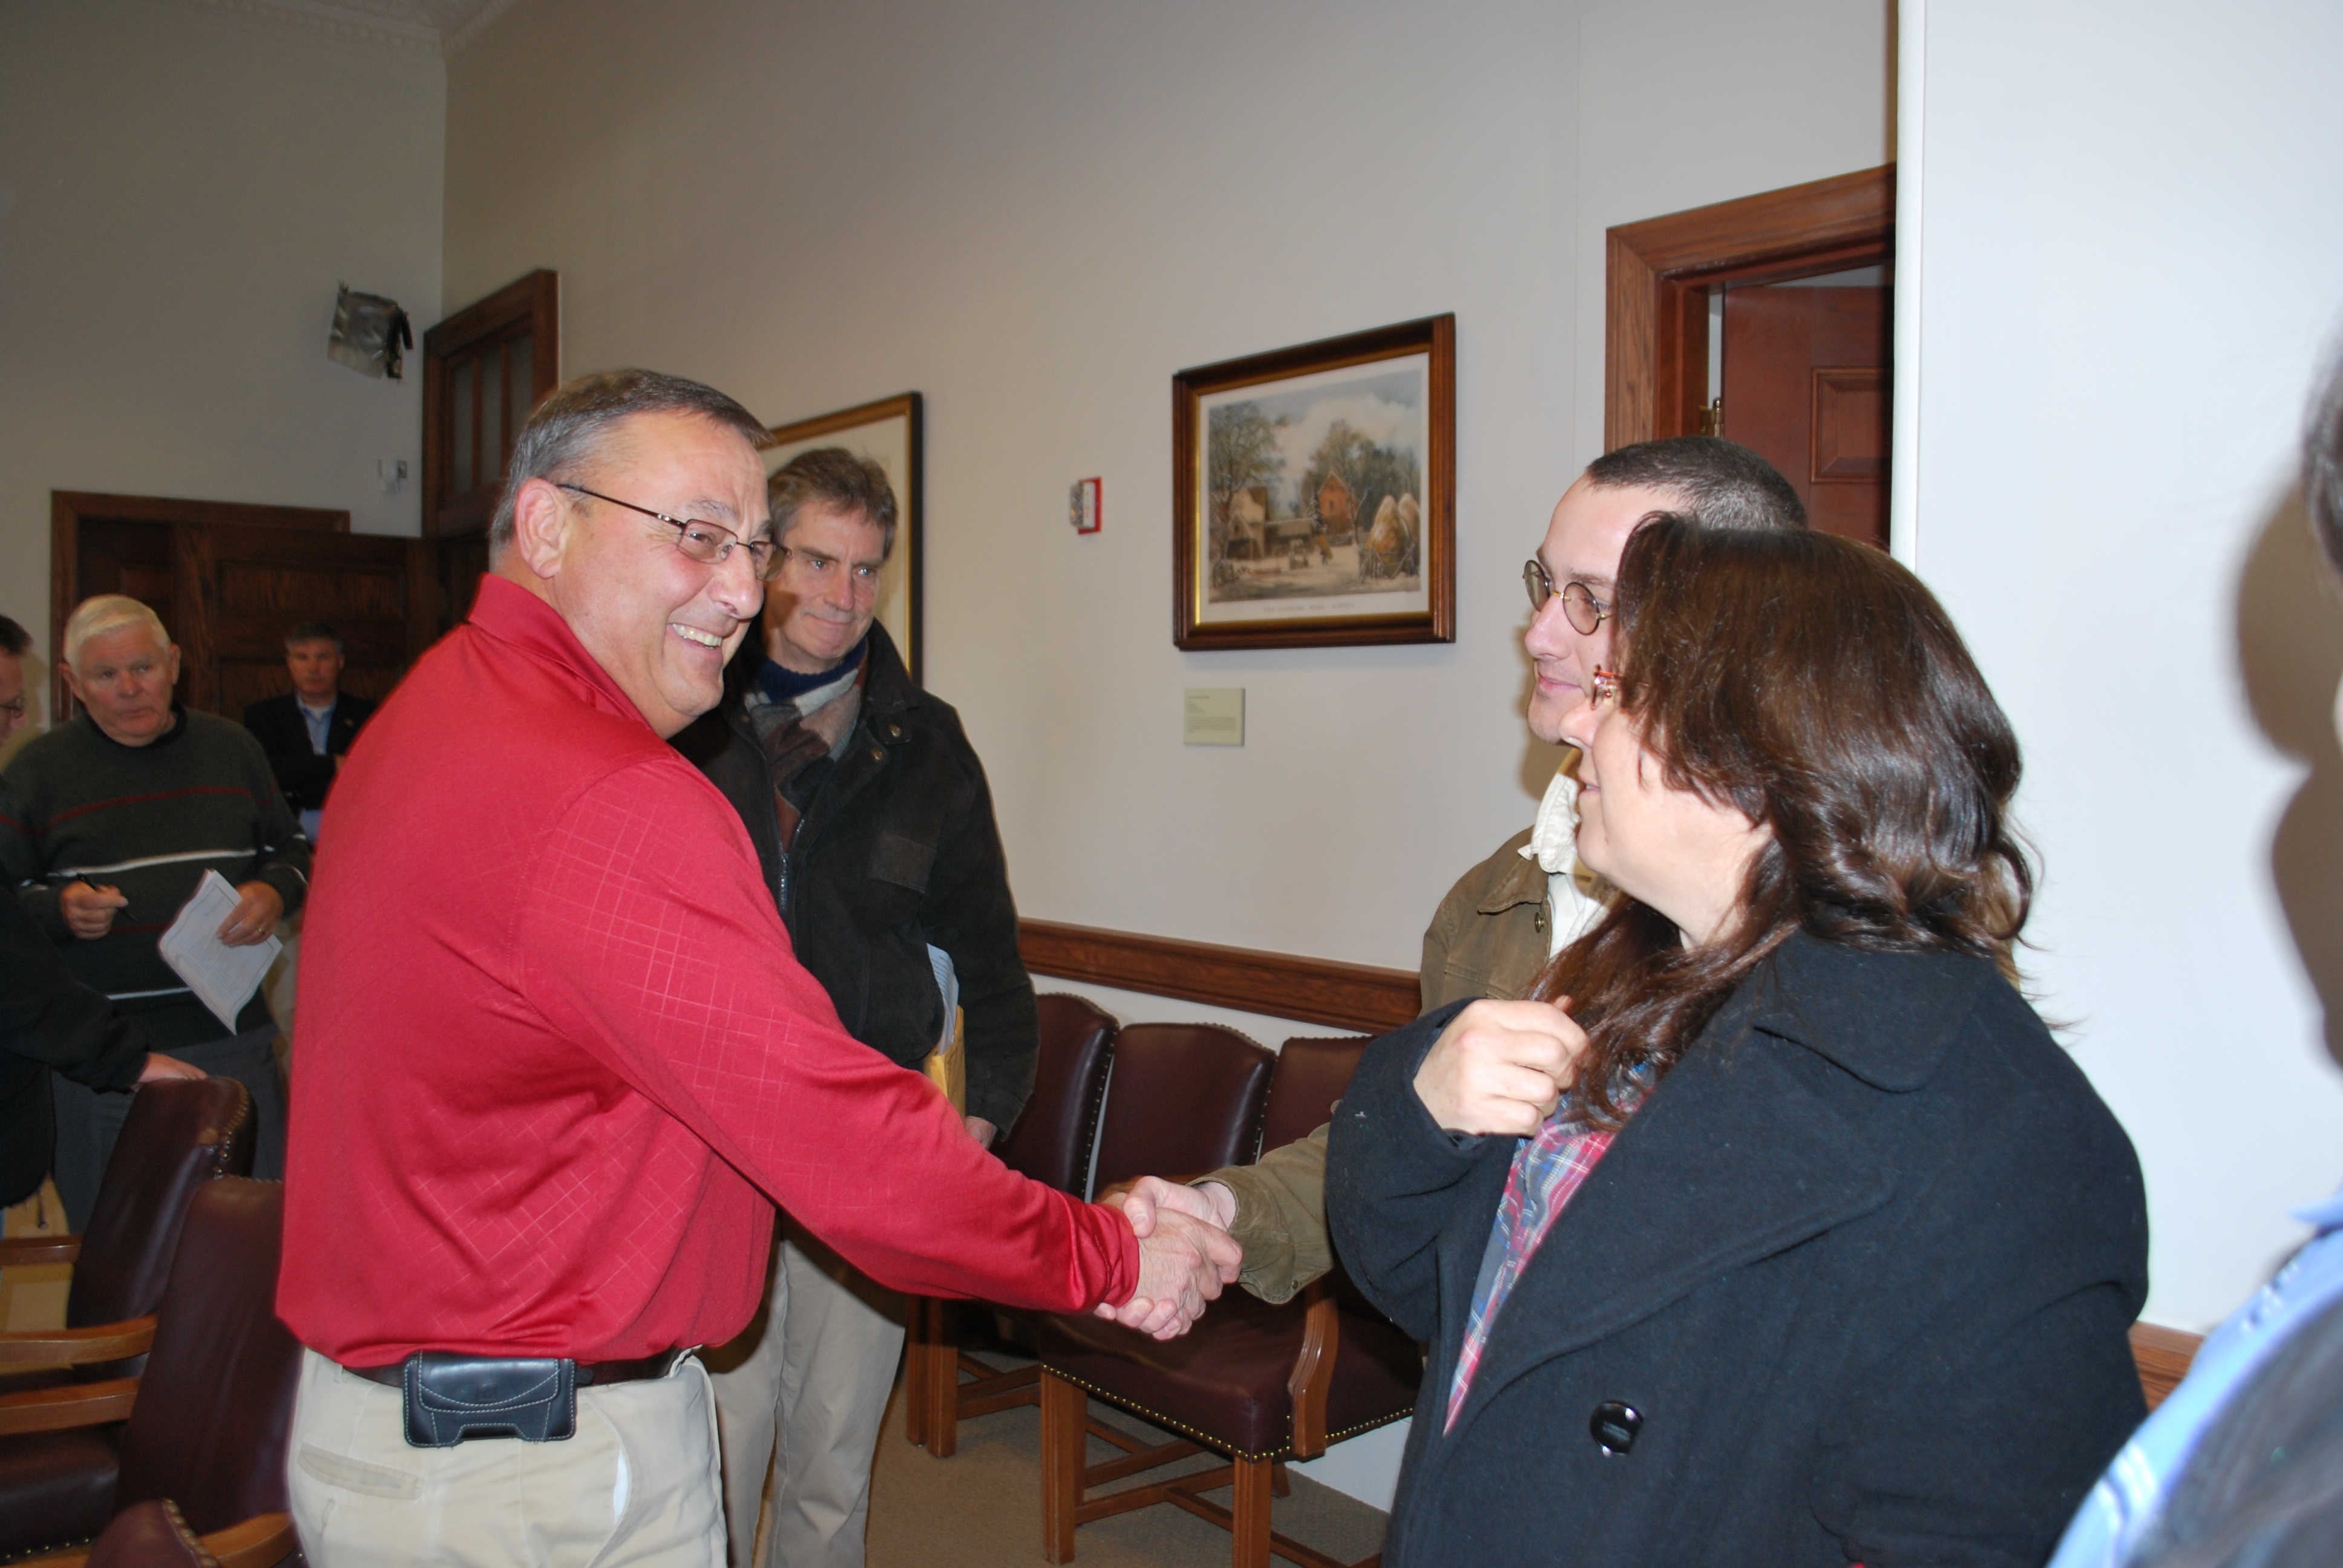 After the meeting, Governor LePage shakes hands with Rep. Andrew O'Brien and Brenda Akers. Wil Tibby can be seen to the right of the Governor and Commissioner Winglass is in the background